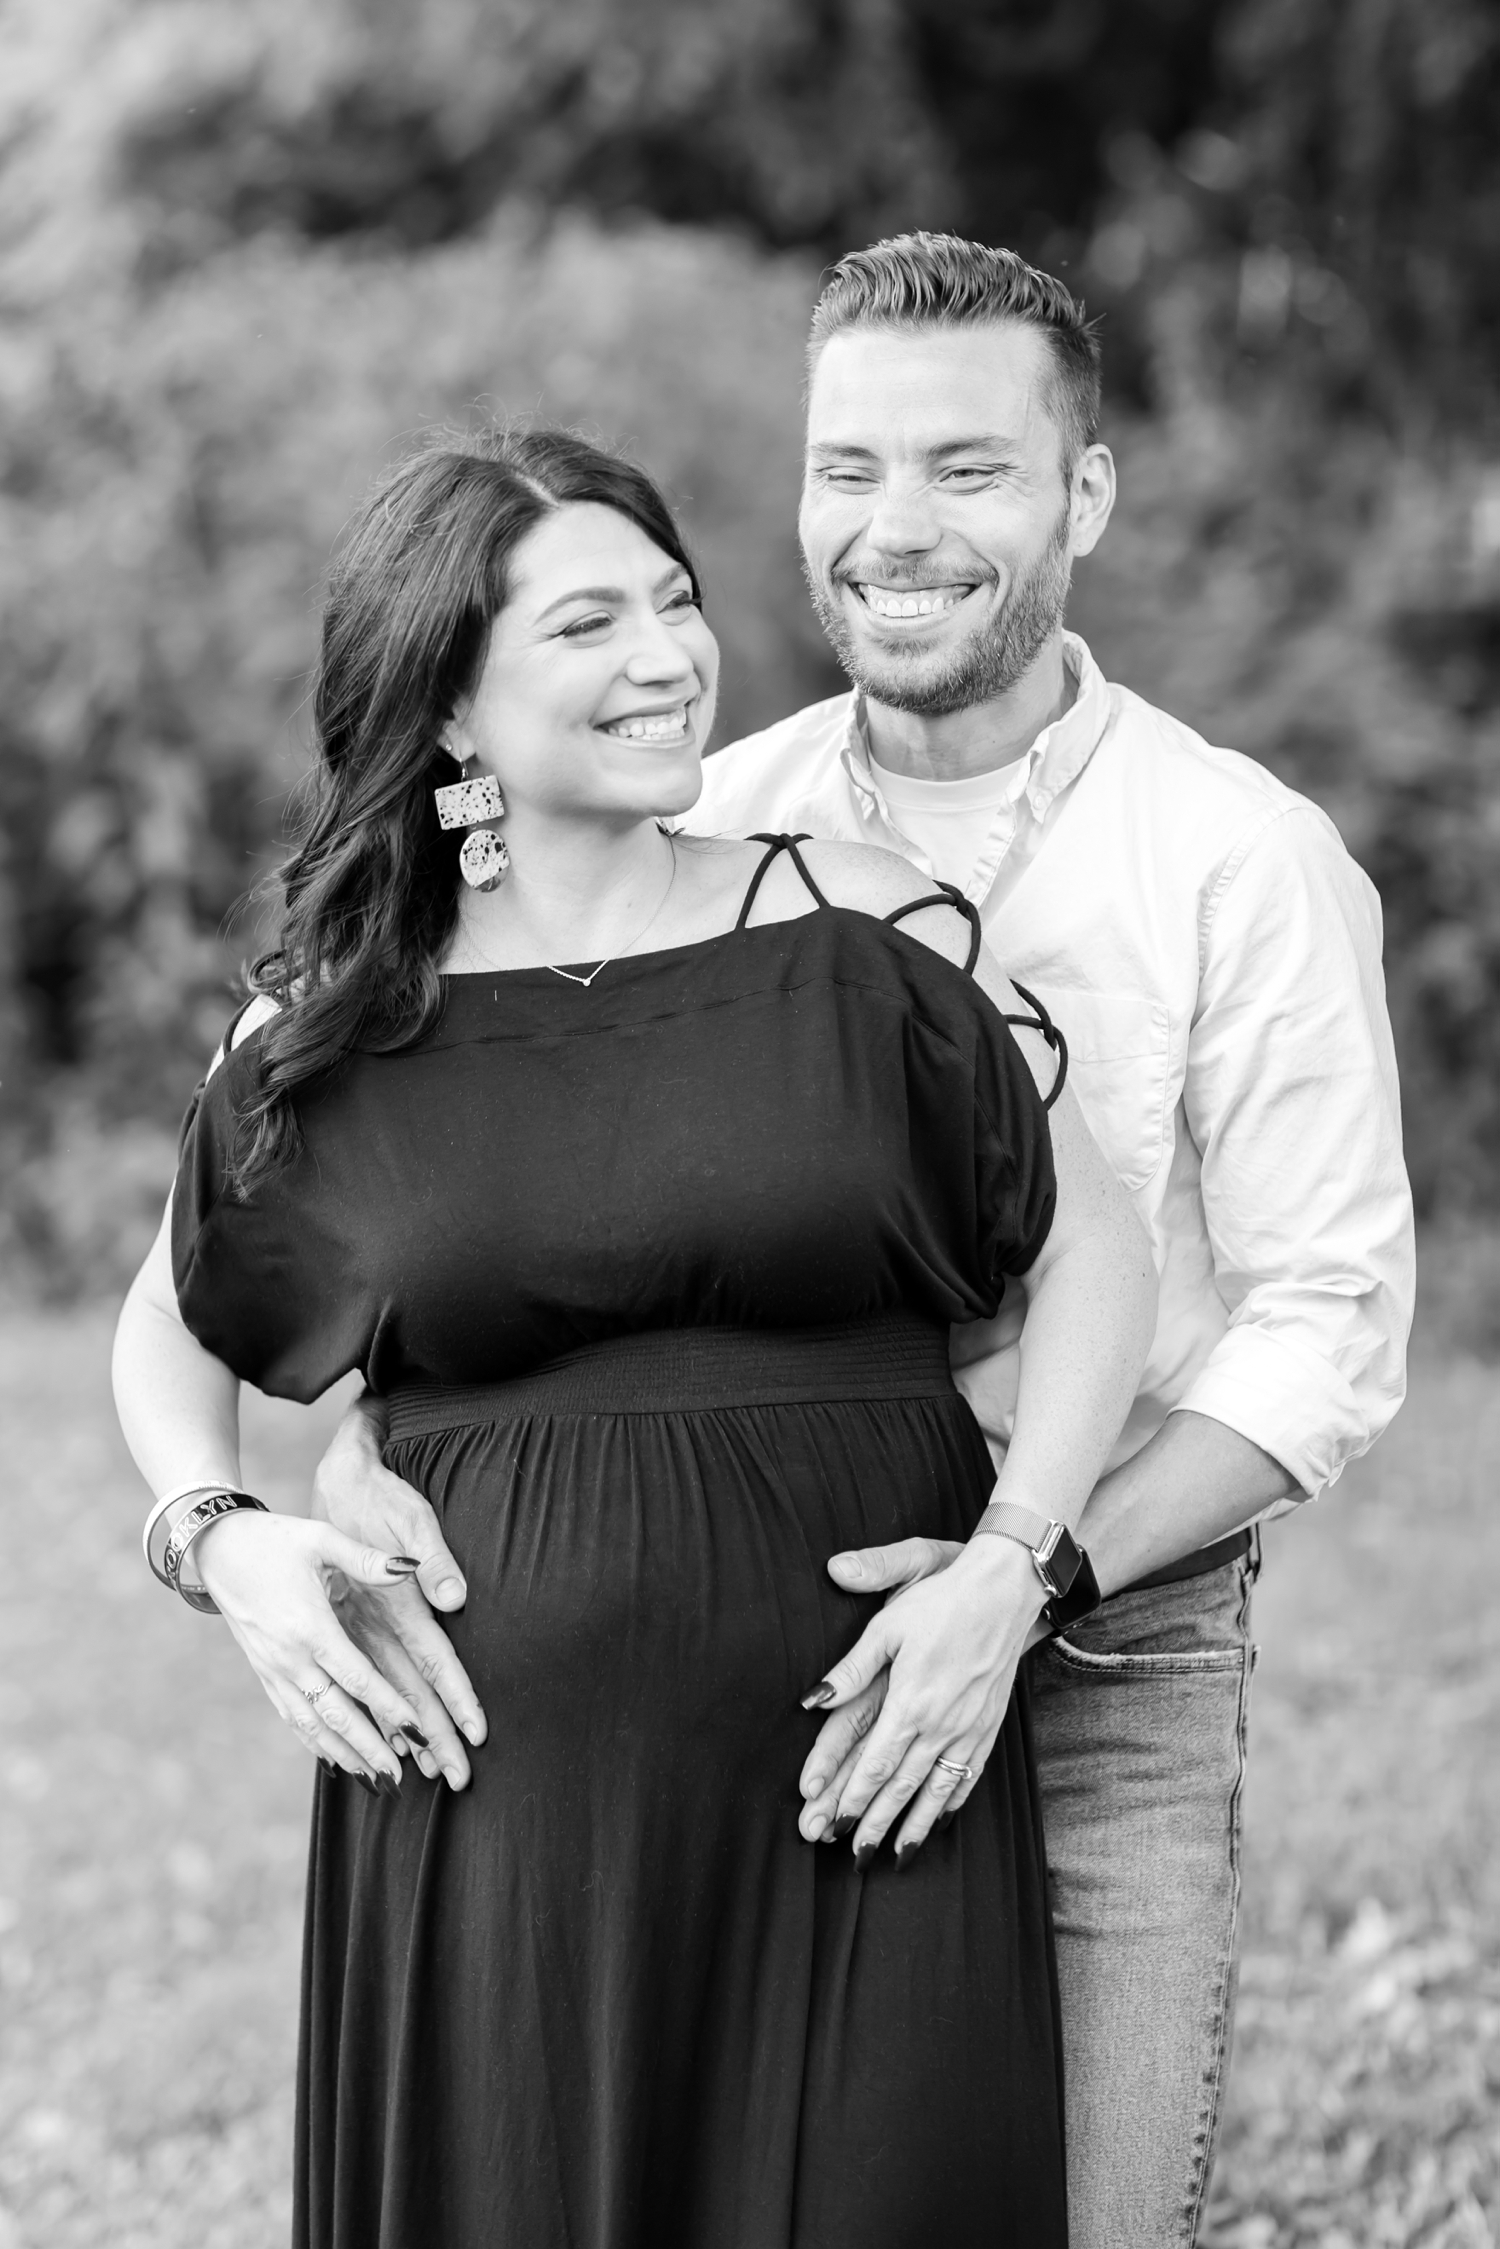 Saunders-Consroe Maternity-19_Cromwell-Valley-Park-Maryland-maternity-photographer-anna-grace-photography-photo.jpg